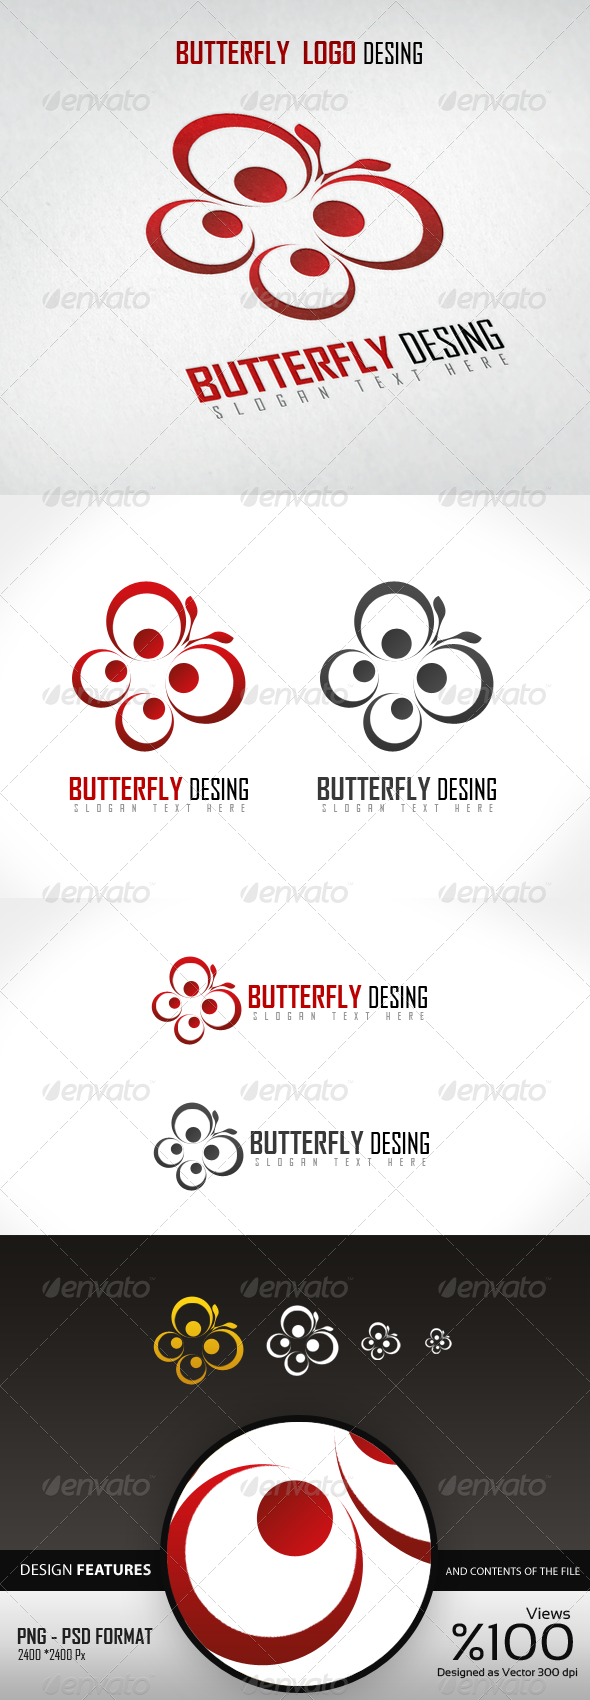 Butterfly Logo Design - Logo Templates